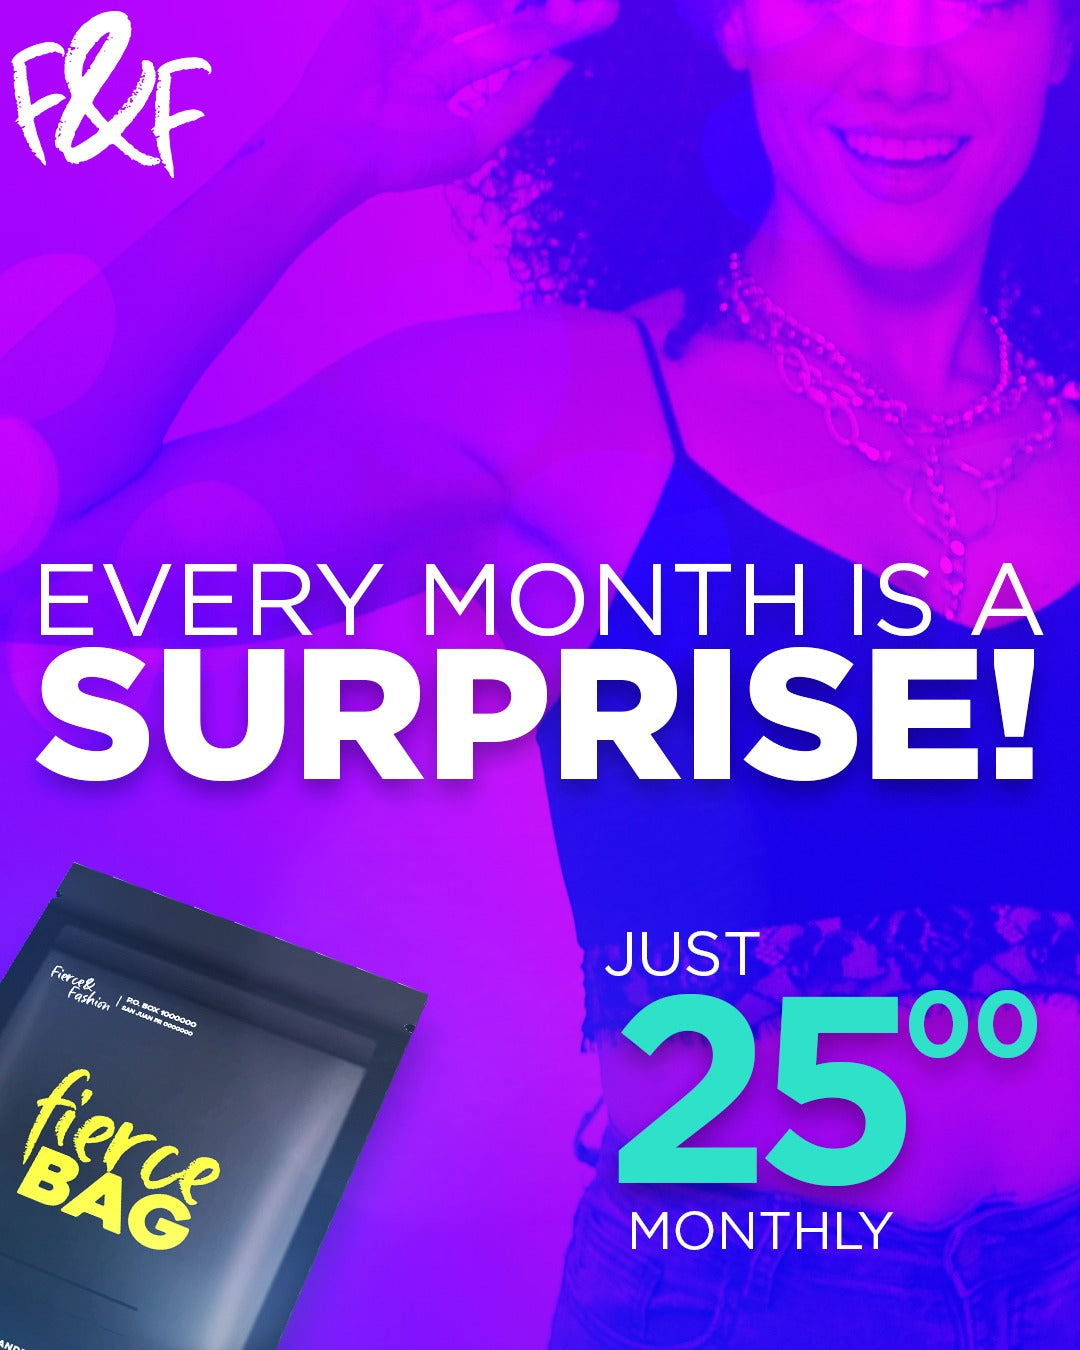 Fierce Bag Monthly Subscription